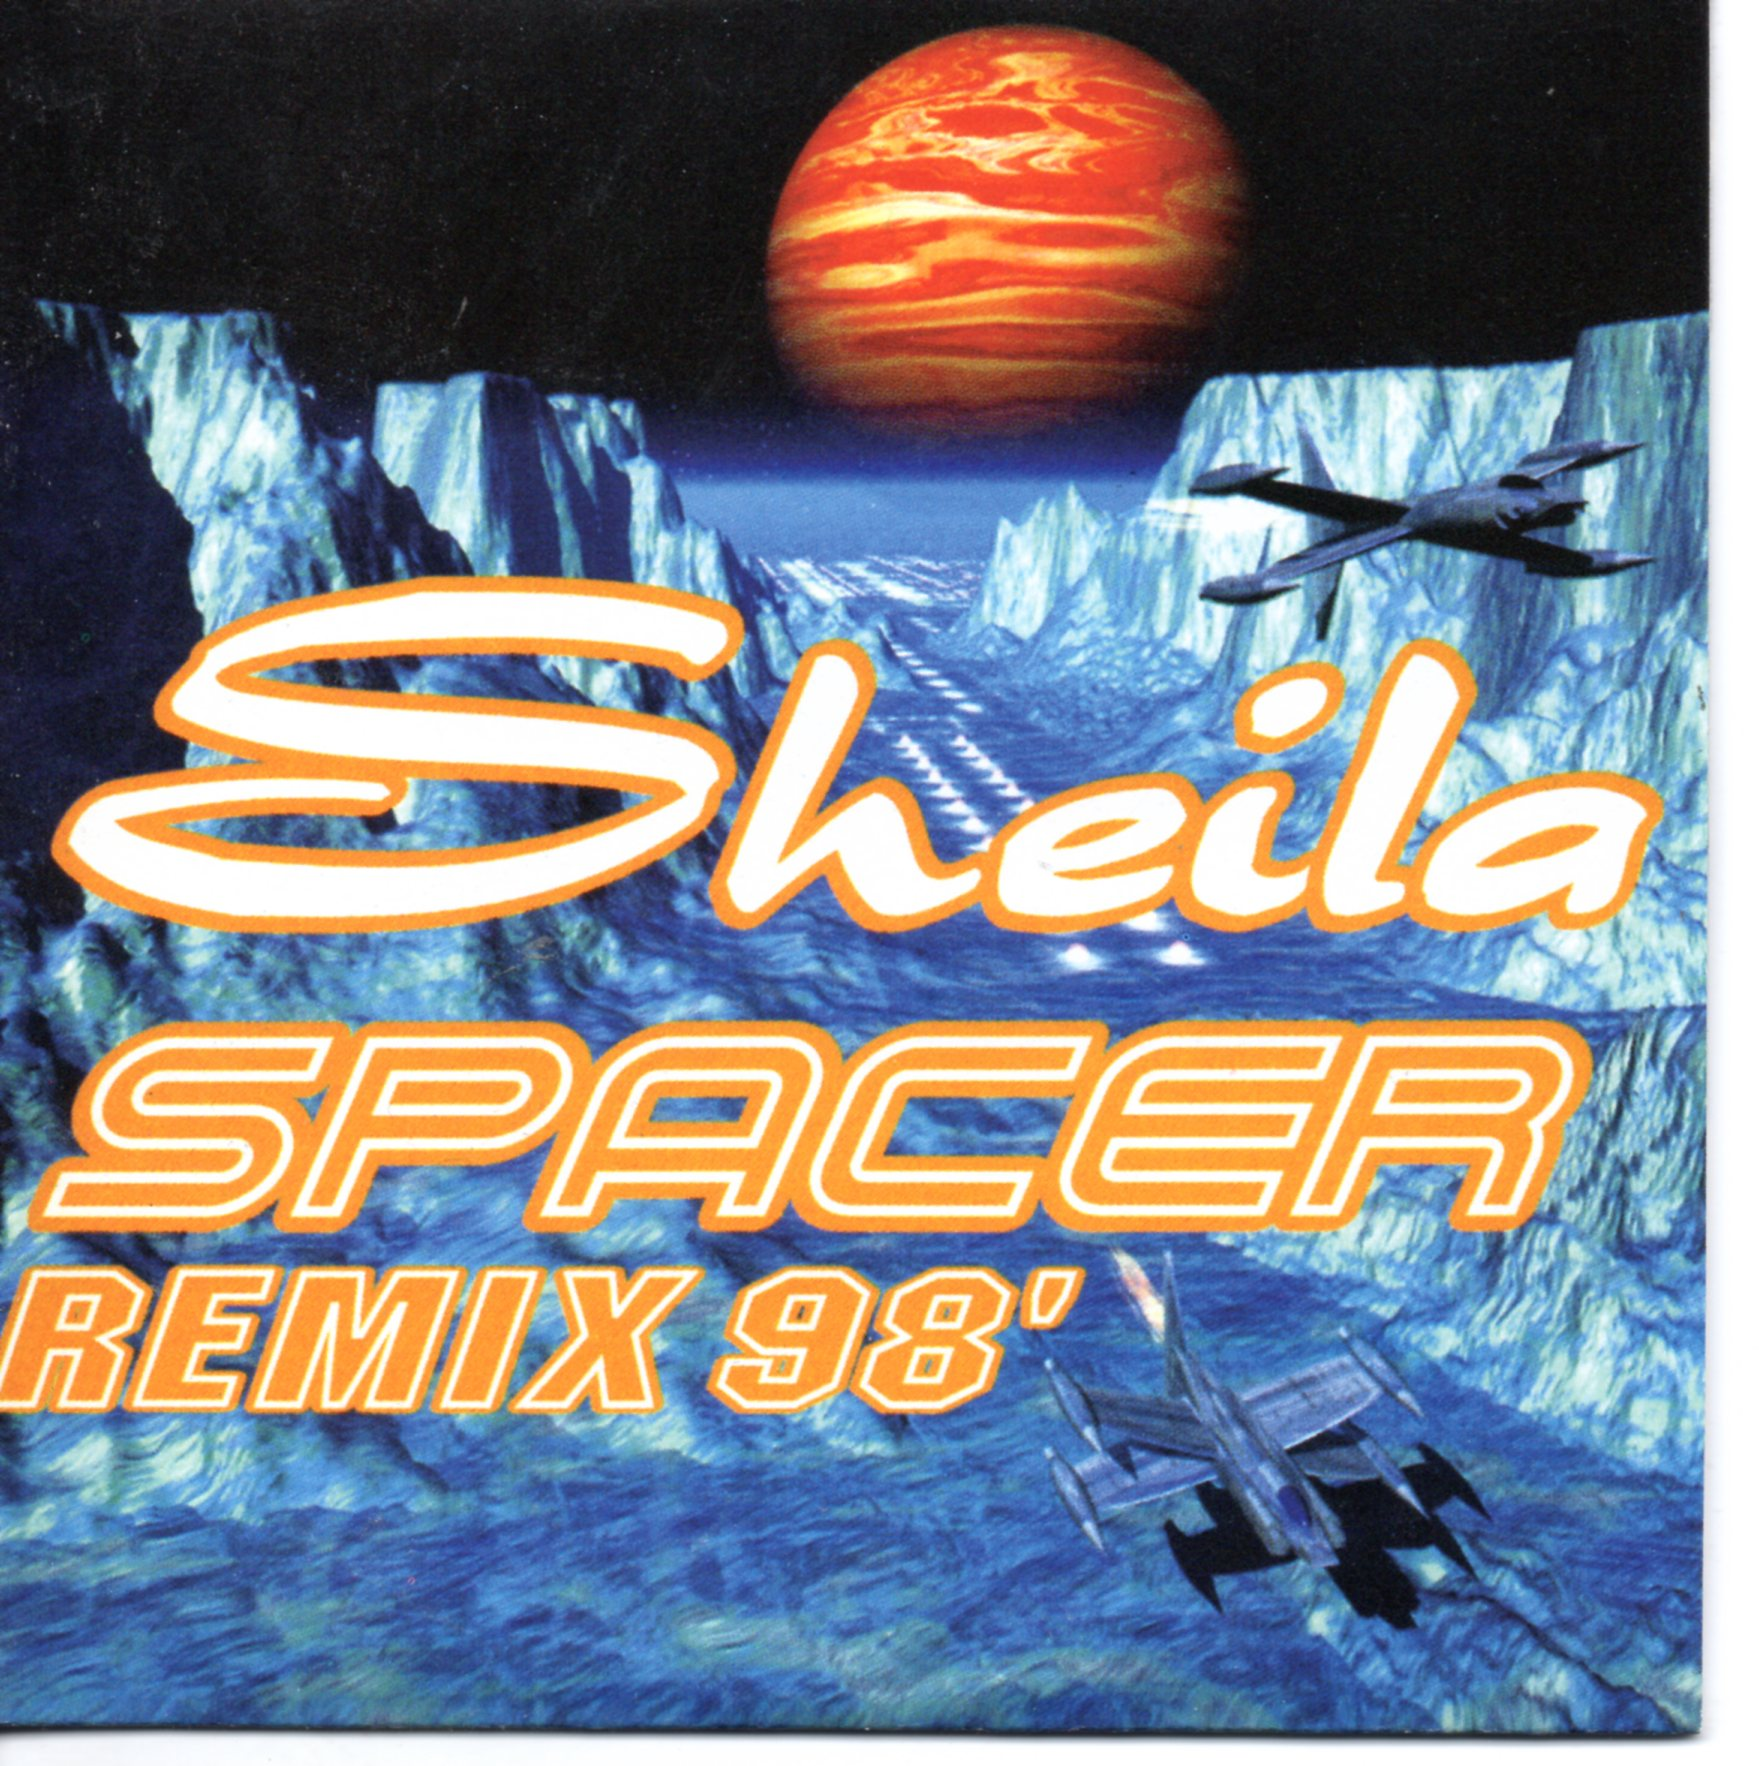 SHEILA B. DEVOTION - CHIC - Spacer 98 3-track CARD SLEEVE - CD single